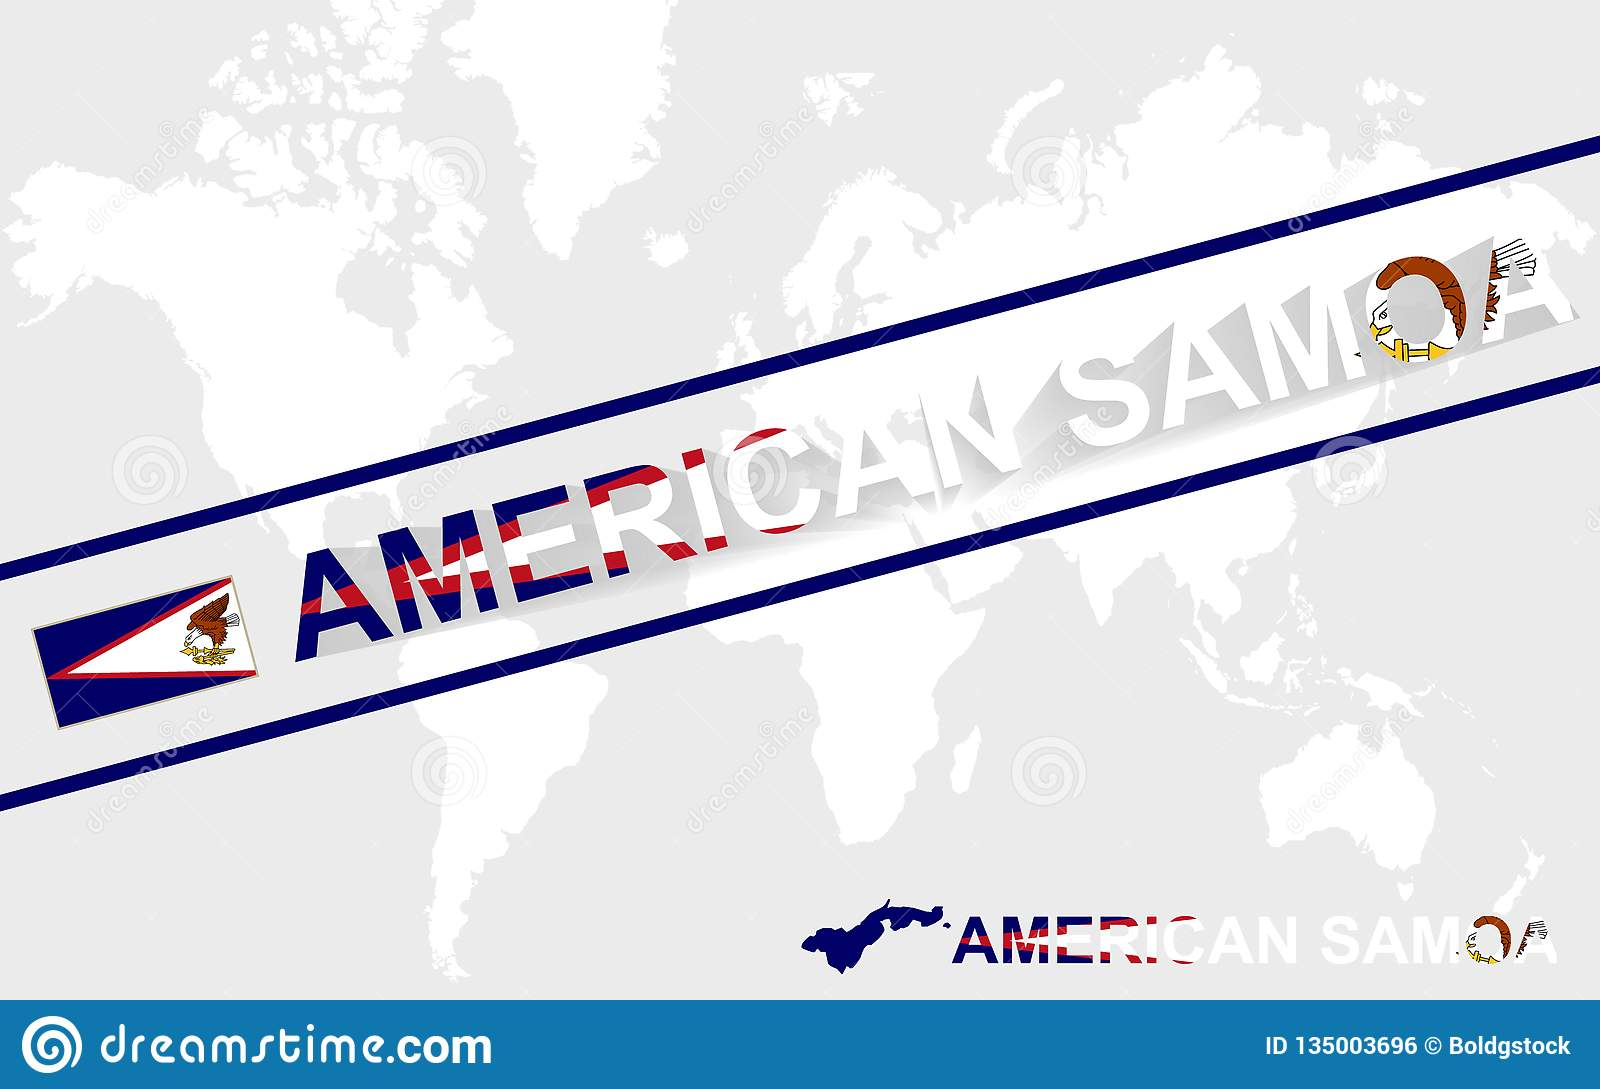 American Samoa Map Flag And Text Illustration Stock Vector ...